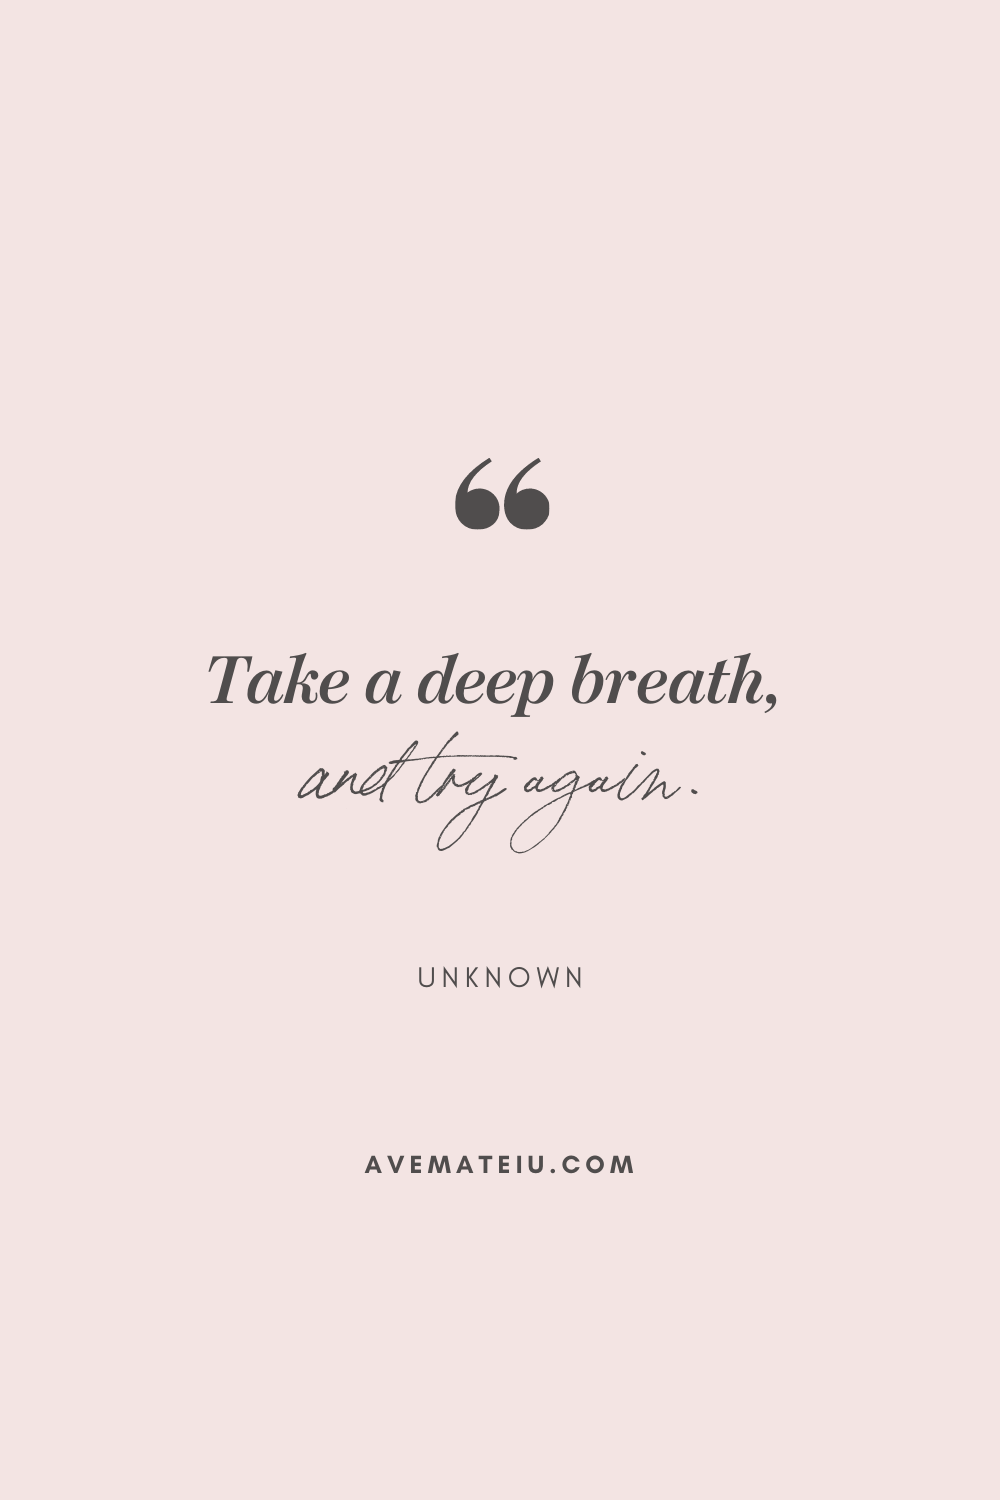 Take a deep breath and try again. - Unknown Motivational Quote Of The Day - October 16, 2019 - beautiful words, deep quotes, happiness quotes, inspirational quotes, leadership quote, life quotes, motivational quotes, positive quotes, success quotes, wisdom quotes